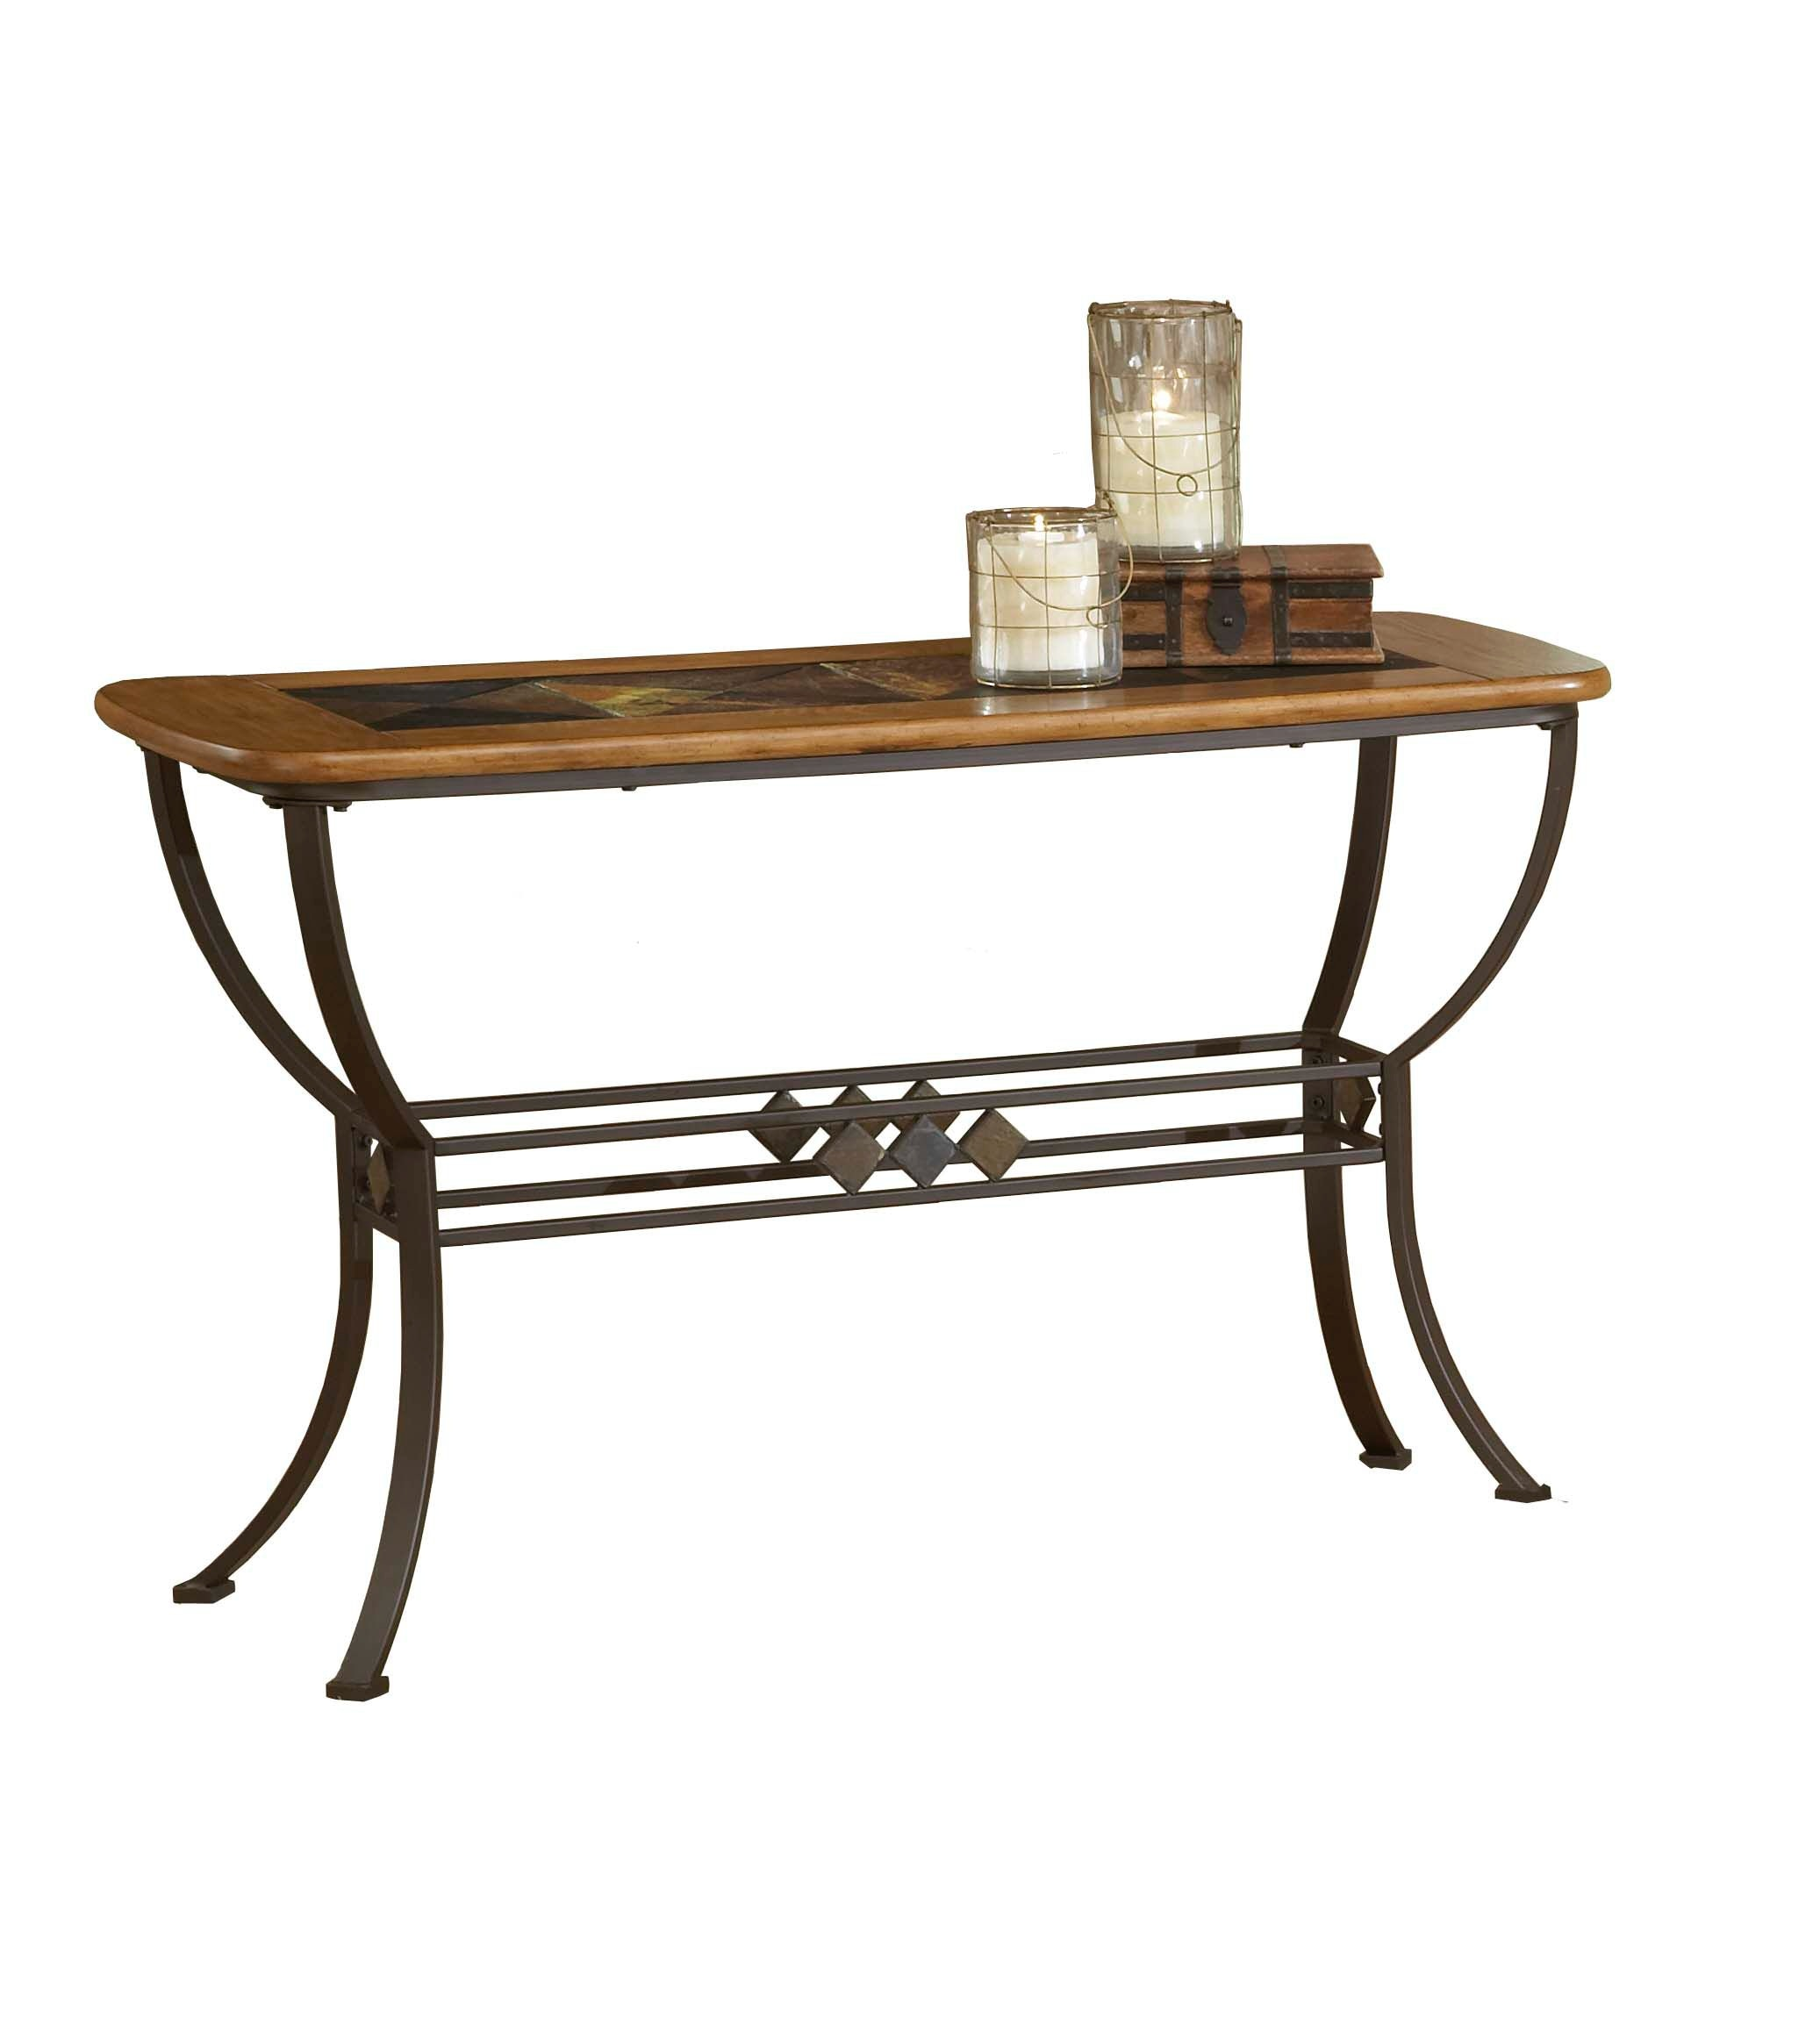 Hillsdale Furniture Living Room Lakeview Console Table 4264 887   Smith  Village Home Furniture   Jacobus And York, PA